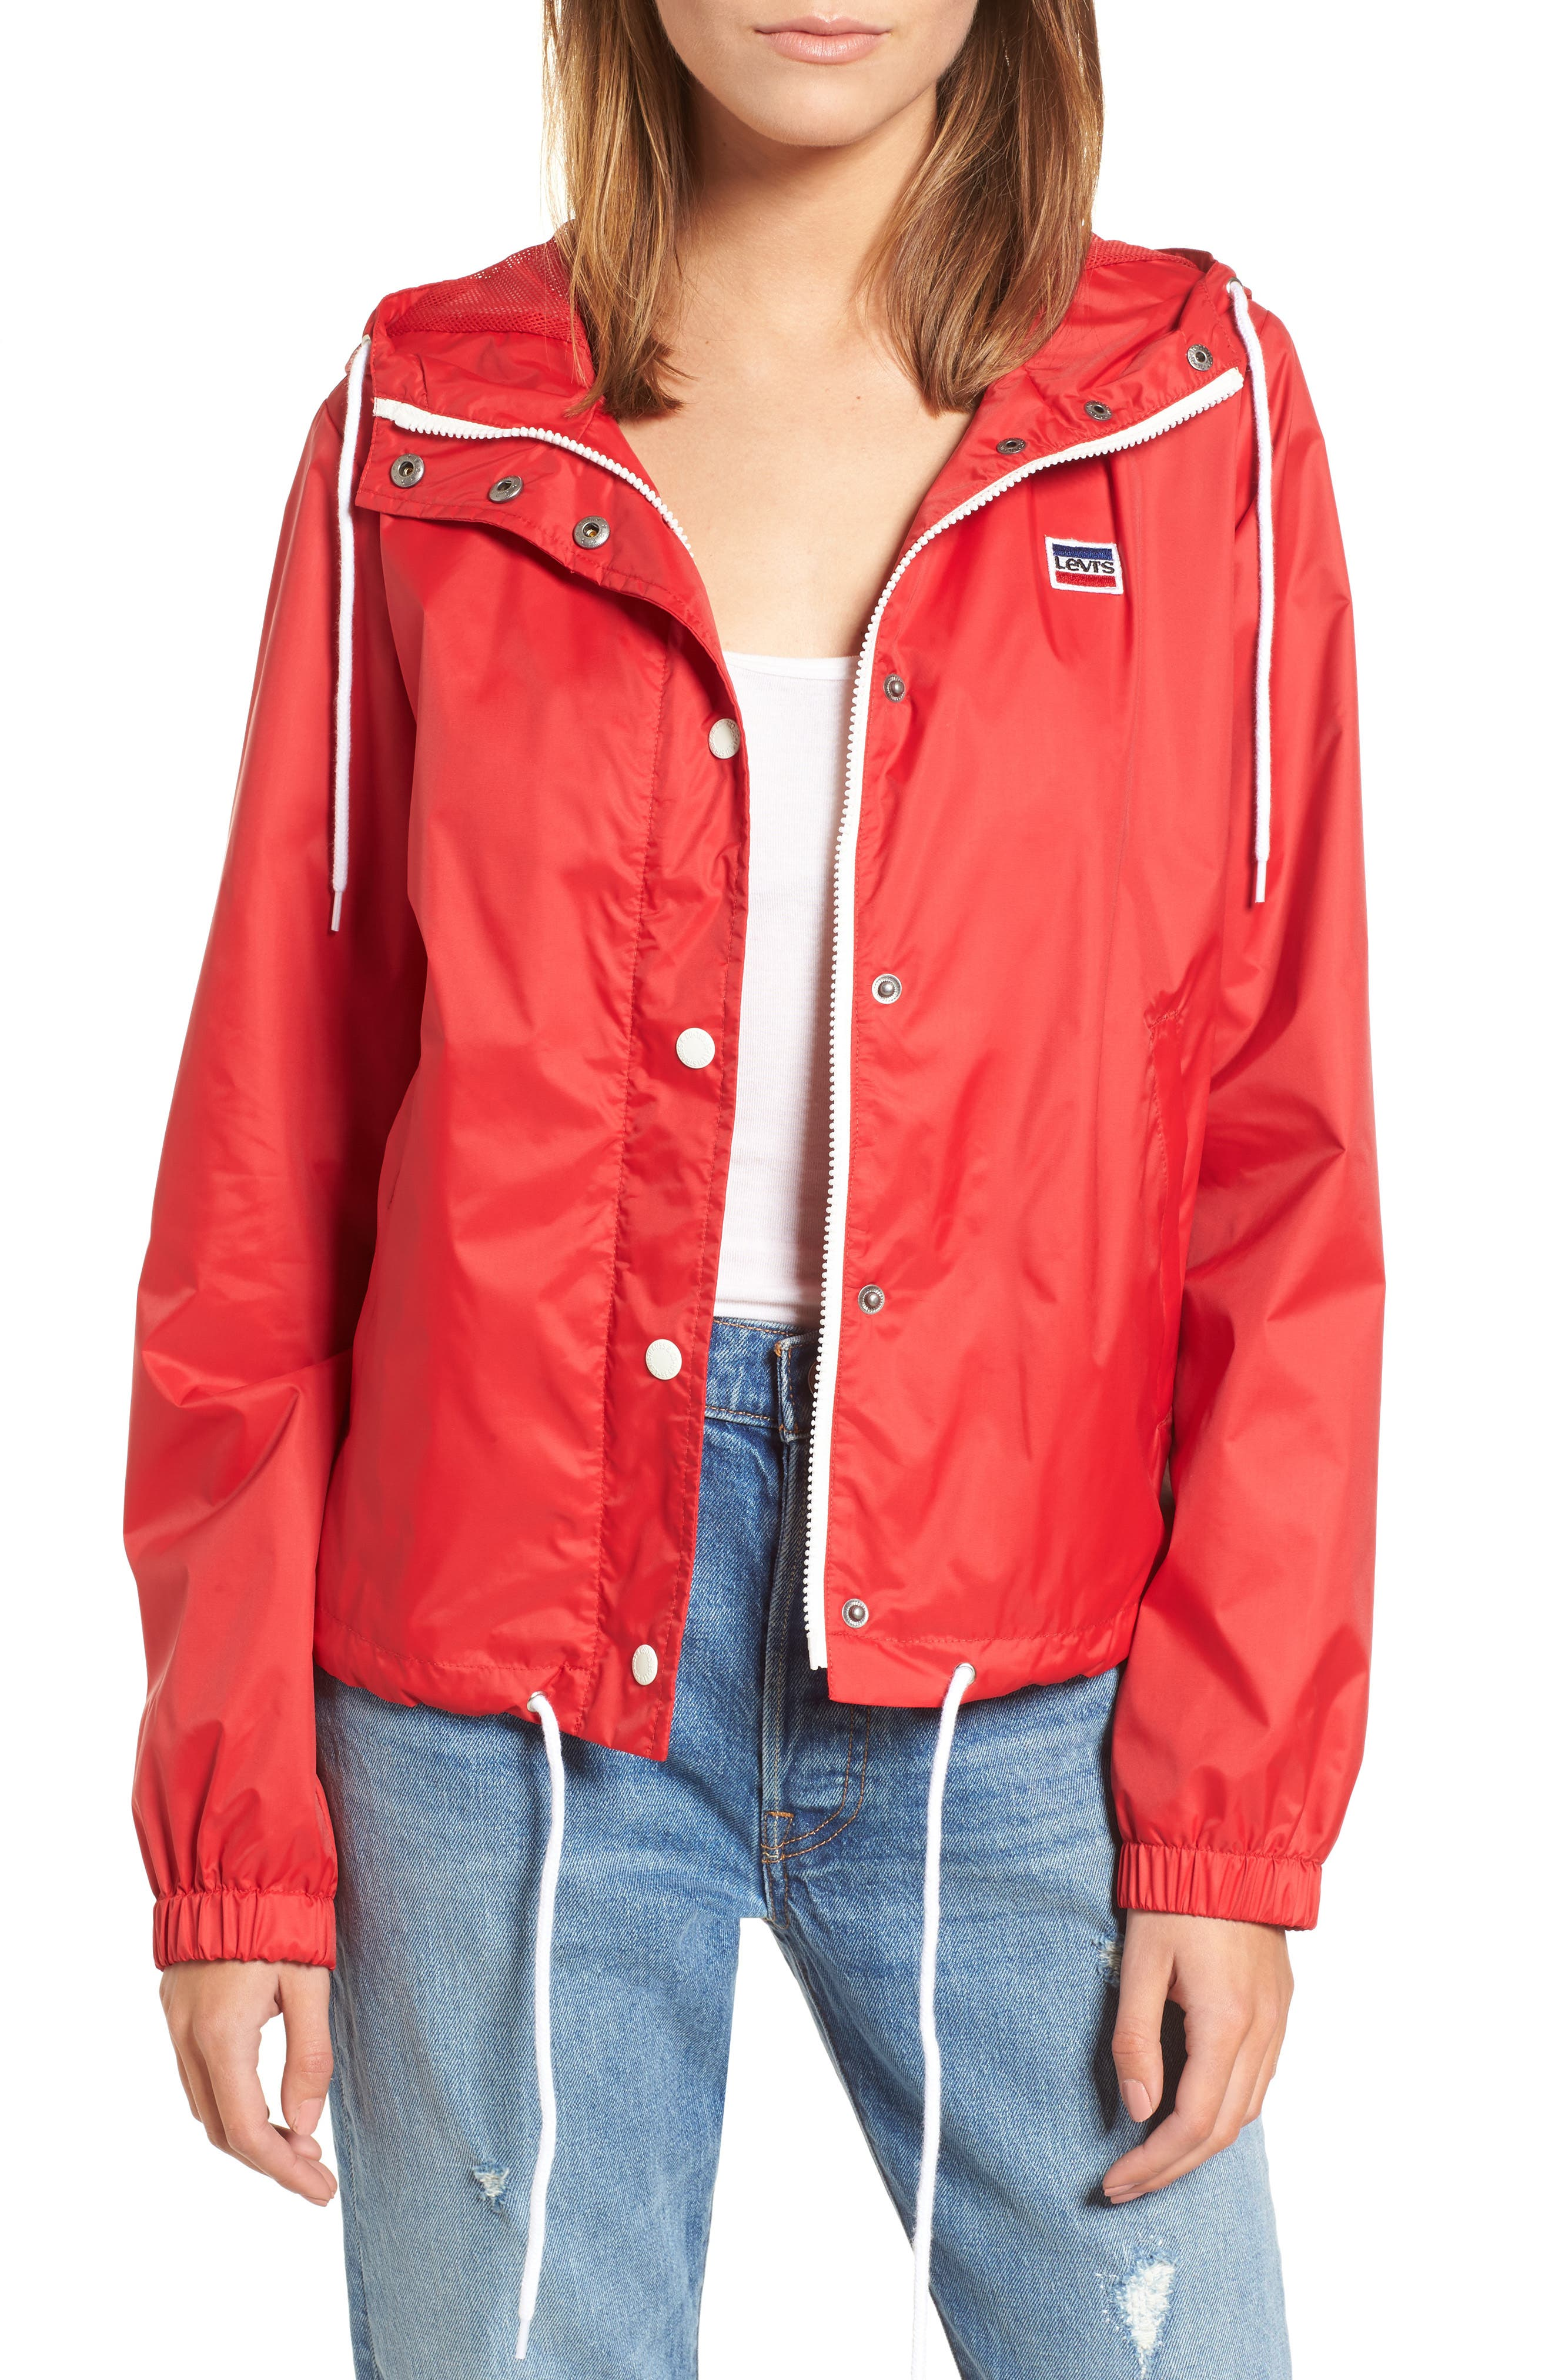 Vintage Coats & Jackets | Retro Coats and Jackets Levis Nylon Zip Front Jacket Size 2XL - Red at Nordstrom Rack $59.97 AT vintagedancer.com